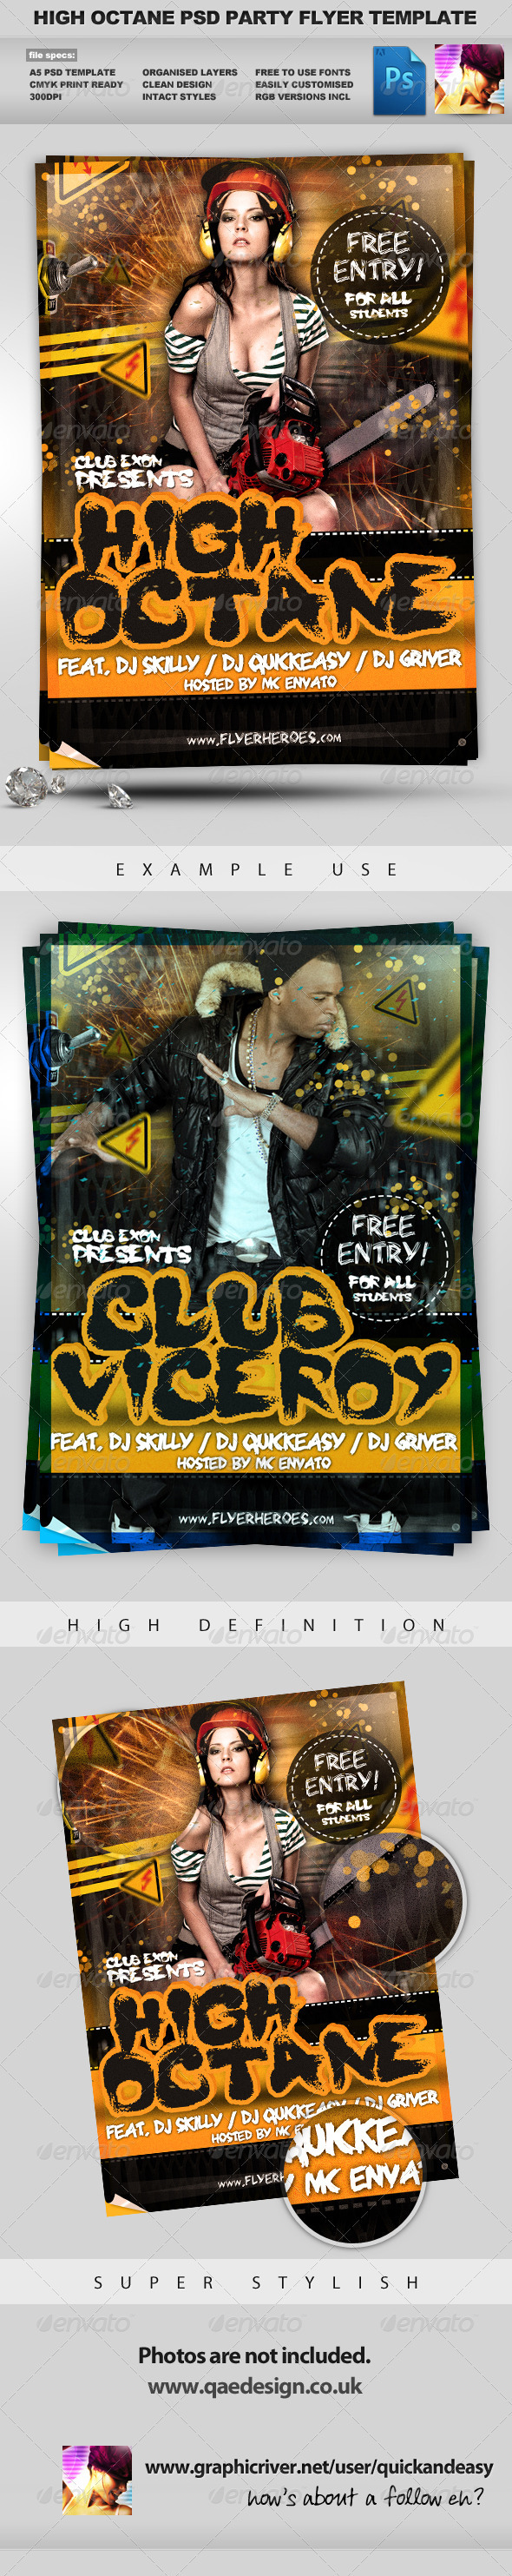 High Octane Flyer Template - Clubs & Parties Events